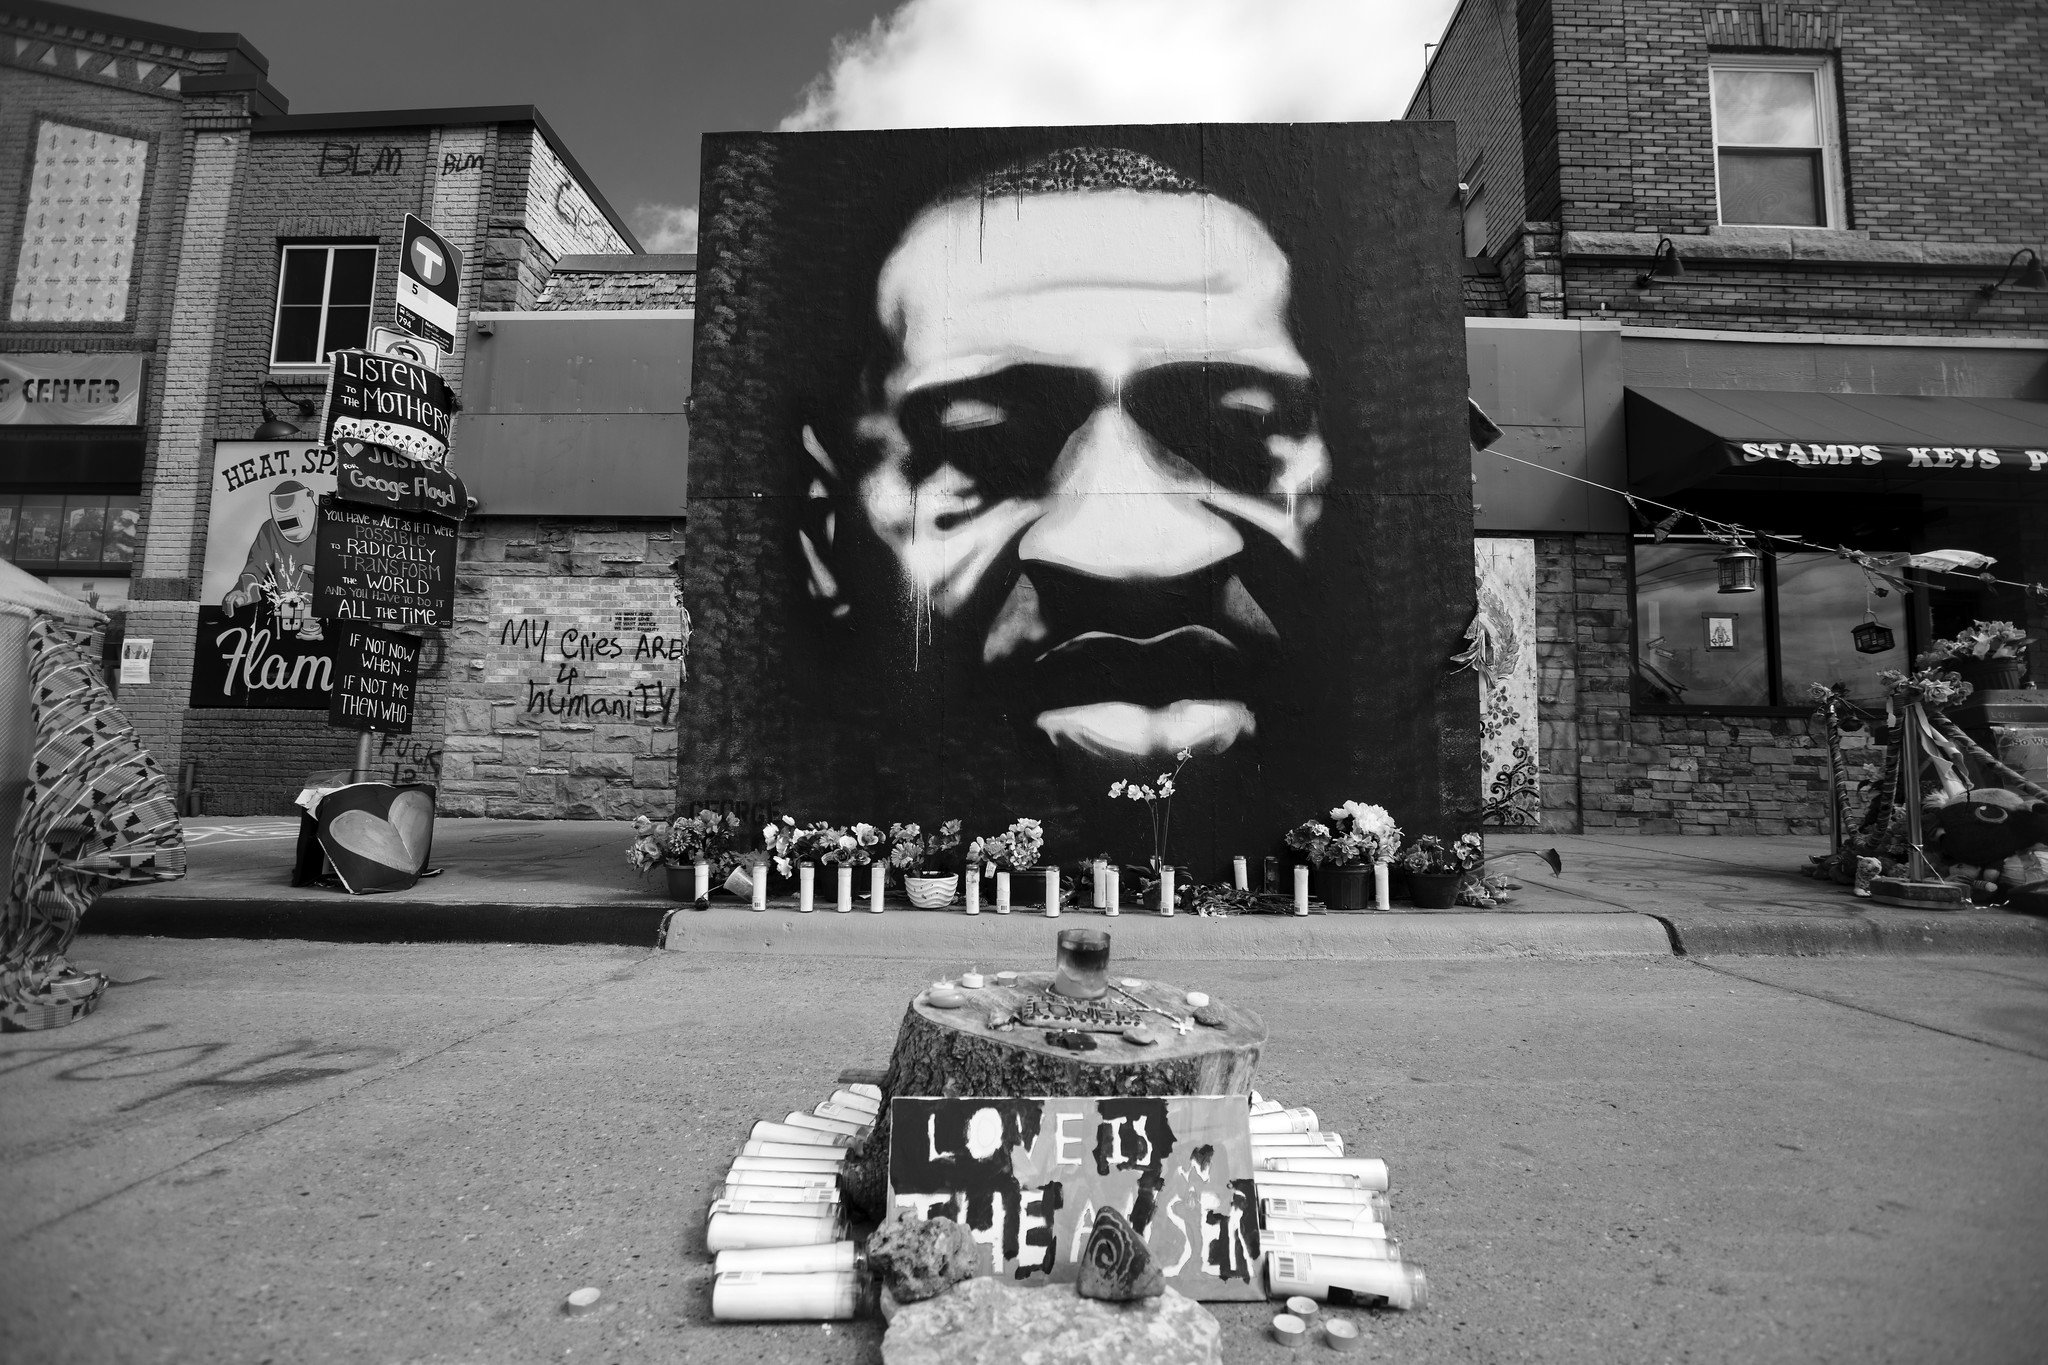 A portrait of George Floyd by Peyton Scott Russell at East 38th Street and Chicago Avenue in Minneapolis, Minnesota